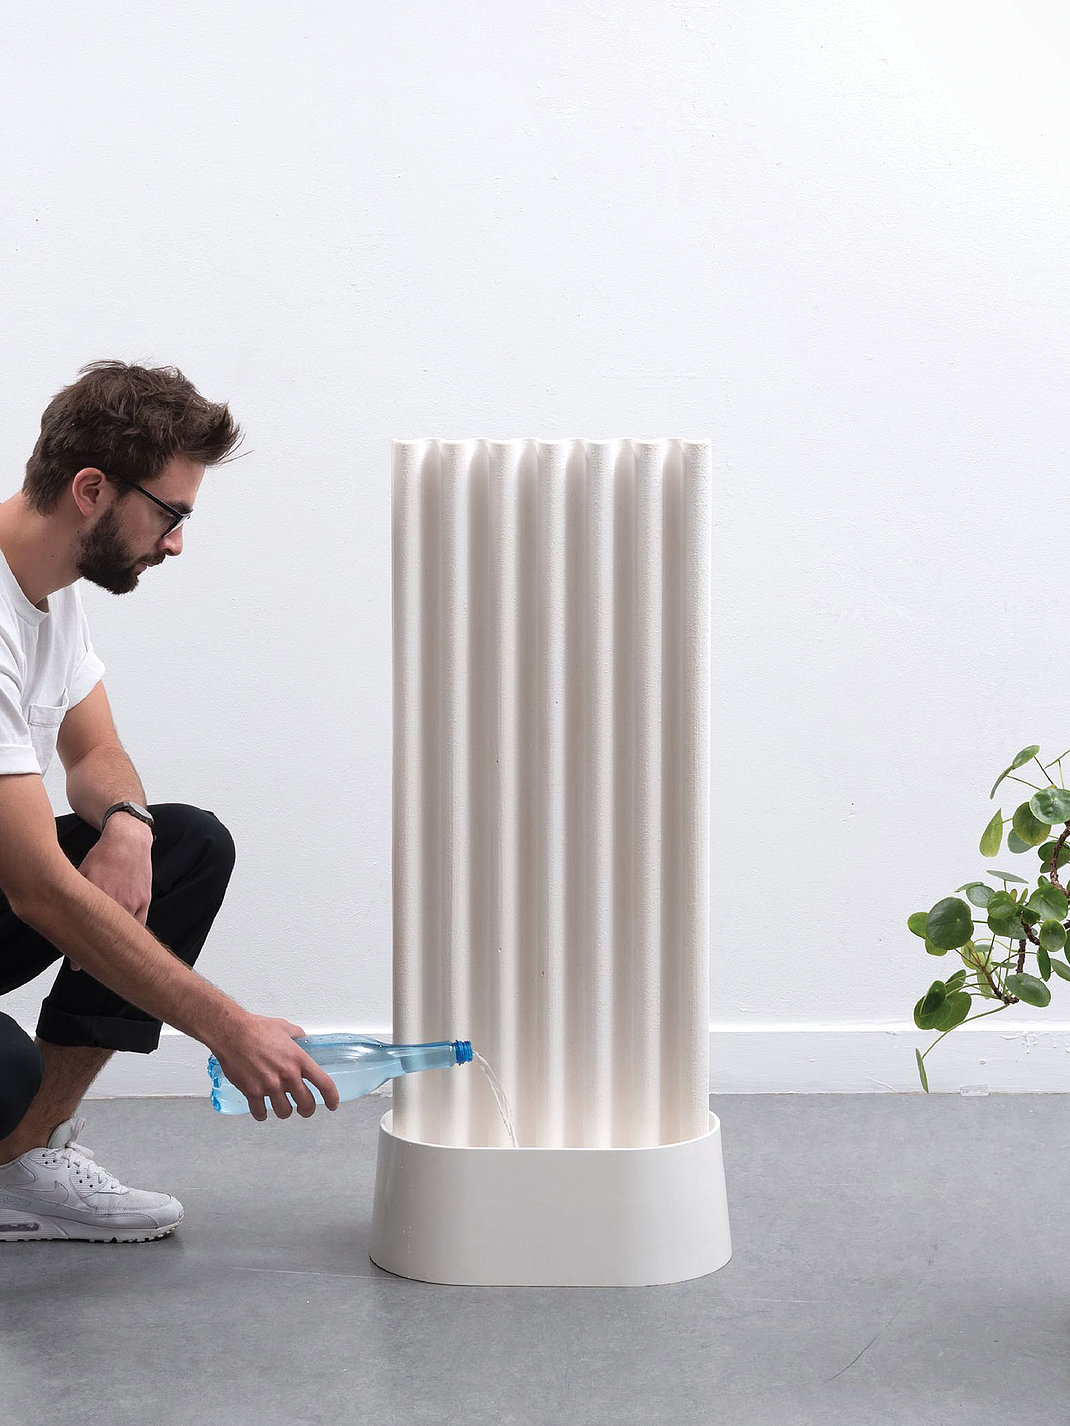 The Paper Clay Air-Humidifier | Red Dot Design Award